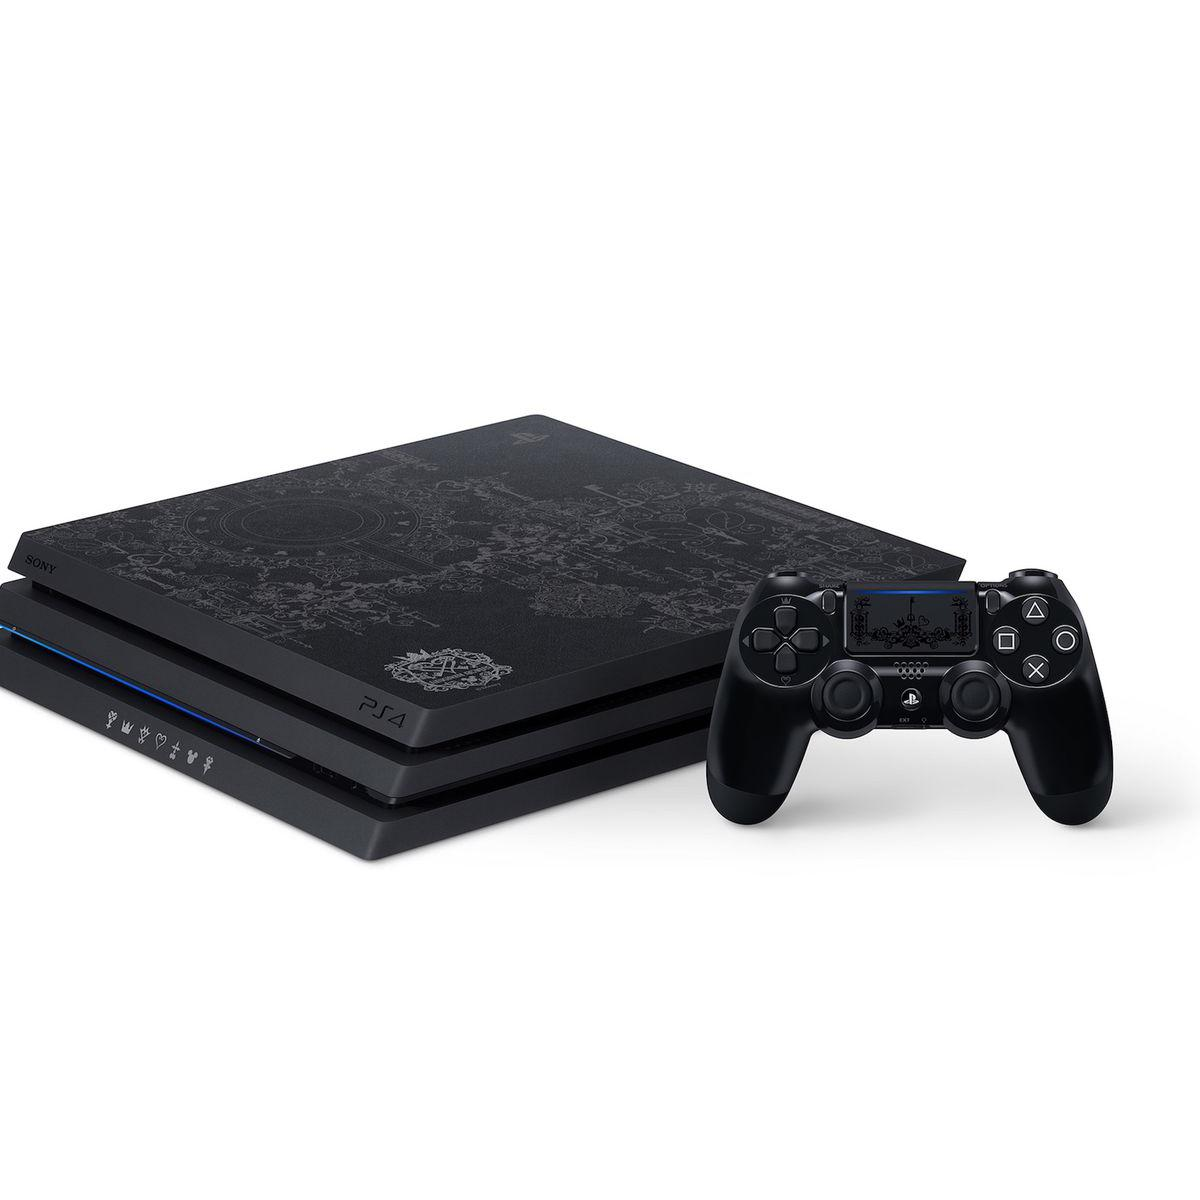 Console Sony PlayStation 4 Pro Edition spécial kingdom hearts III 1To + 1 manette - Noir